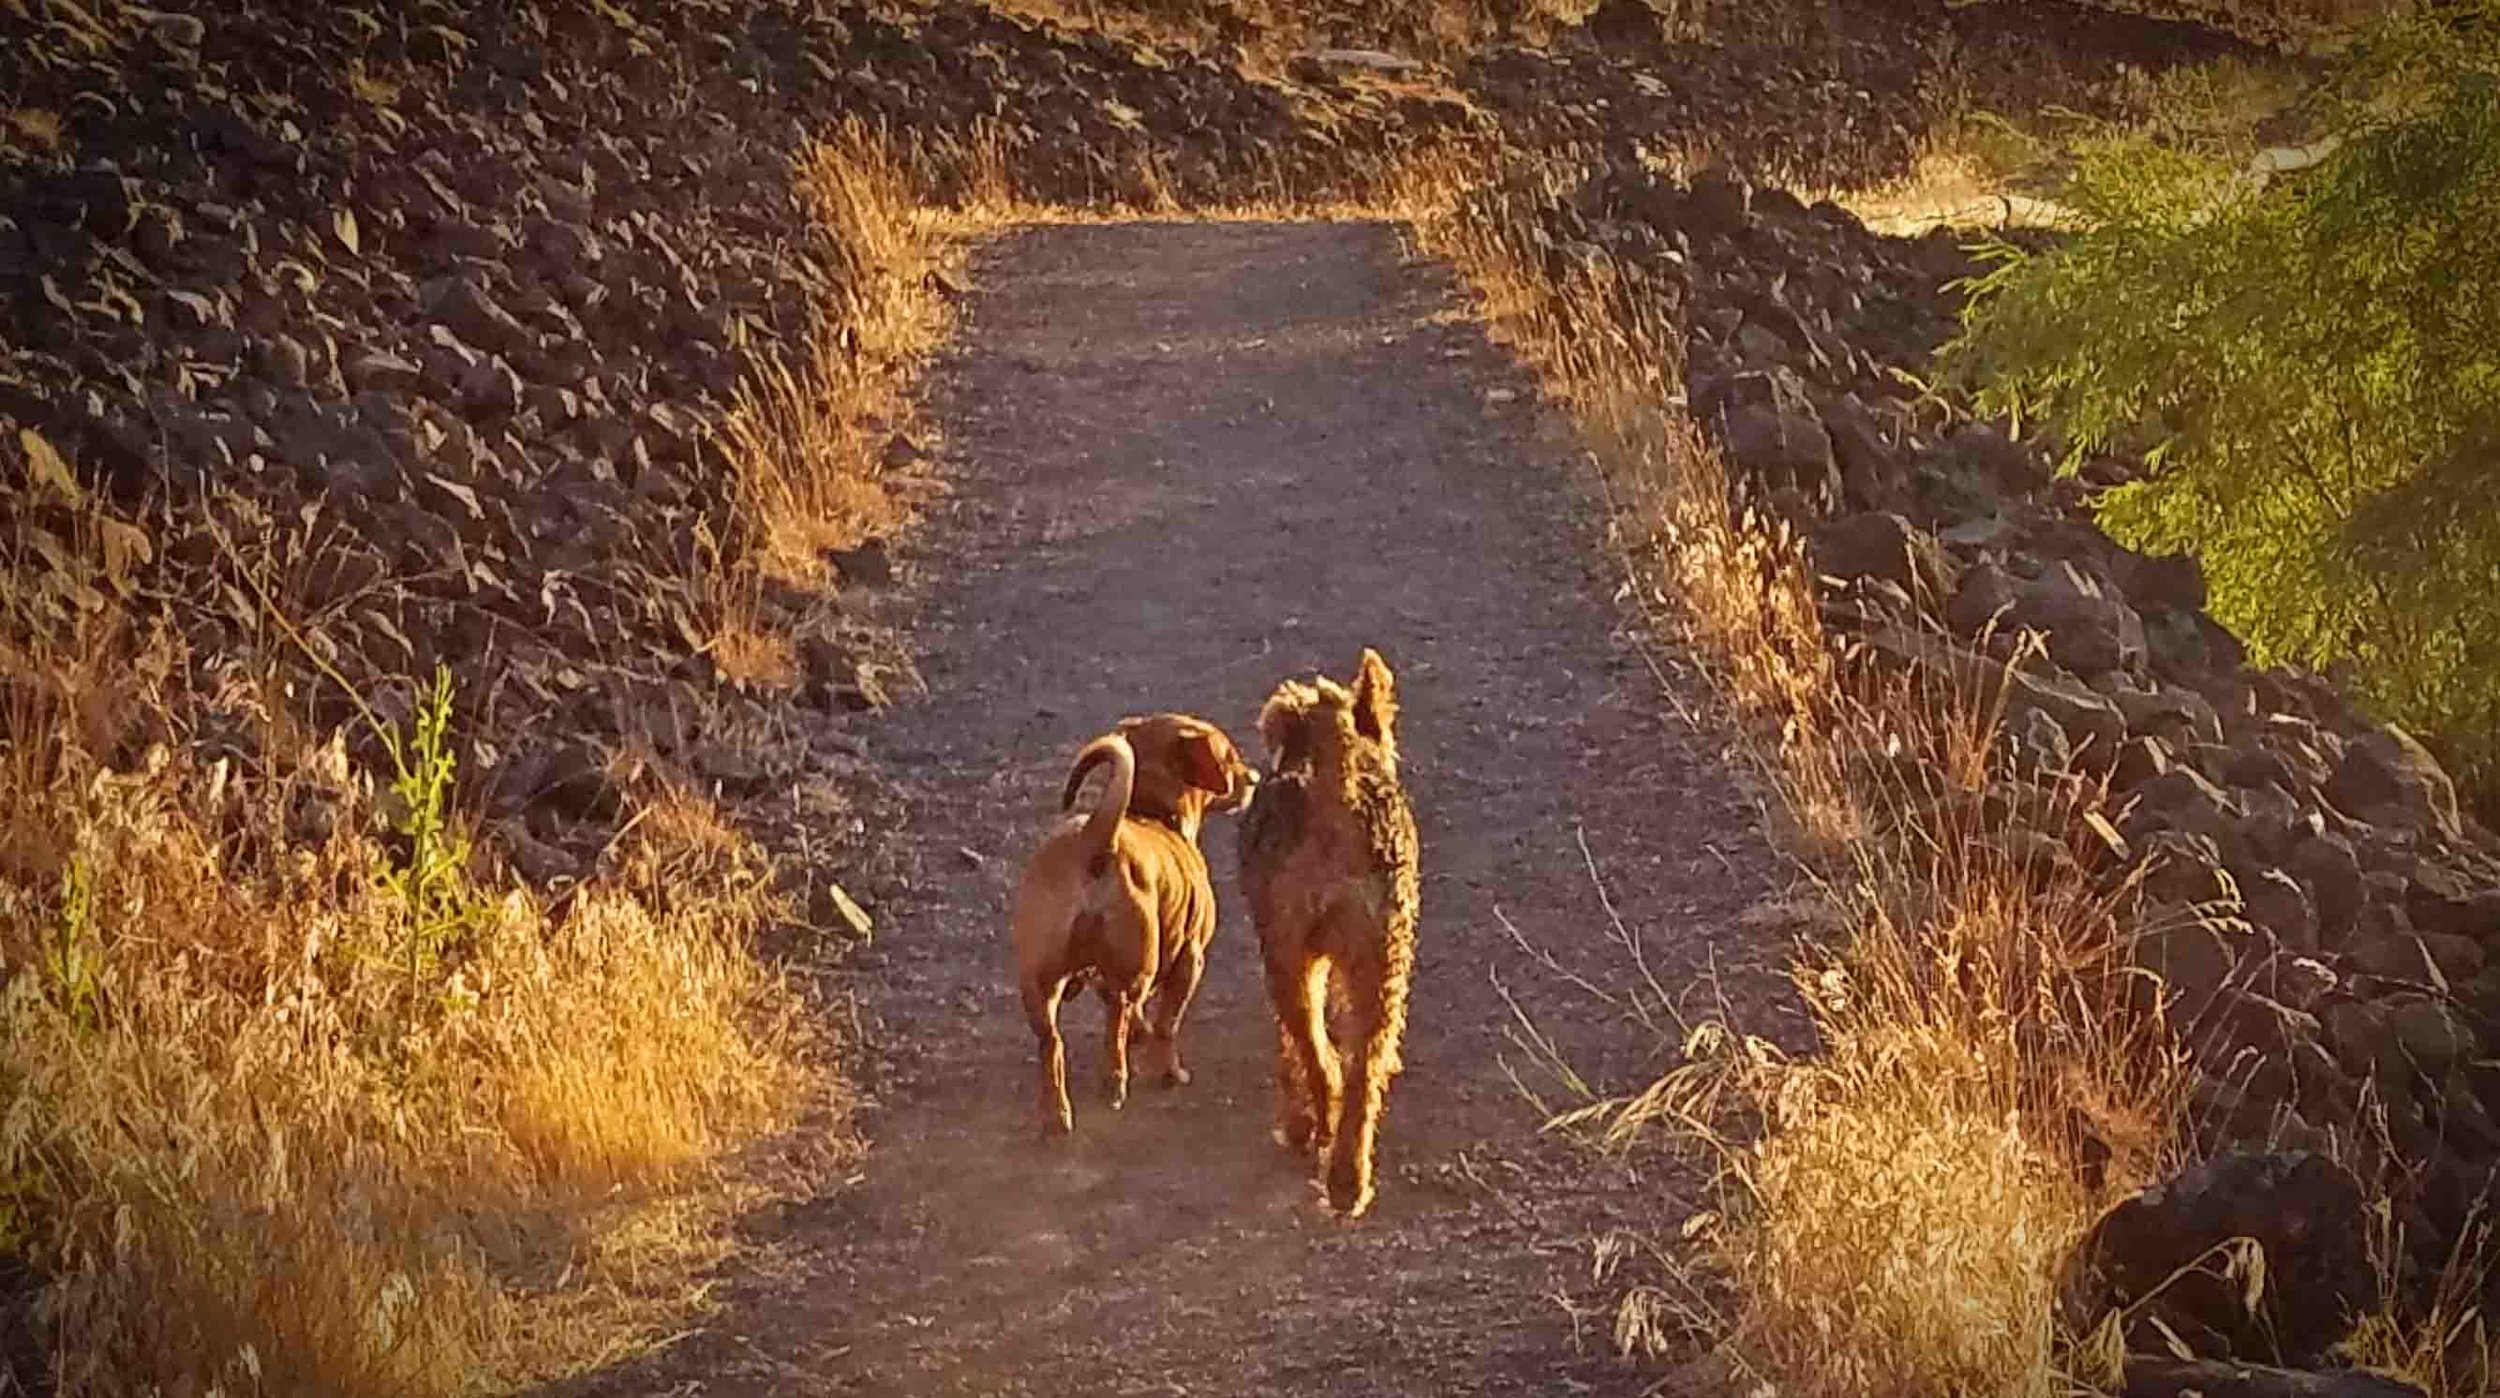 My dog son Doodle and his girlfriend Eloise on the Mosier trail. Photo: (c) Barb Ayers, DogDiary.org